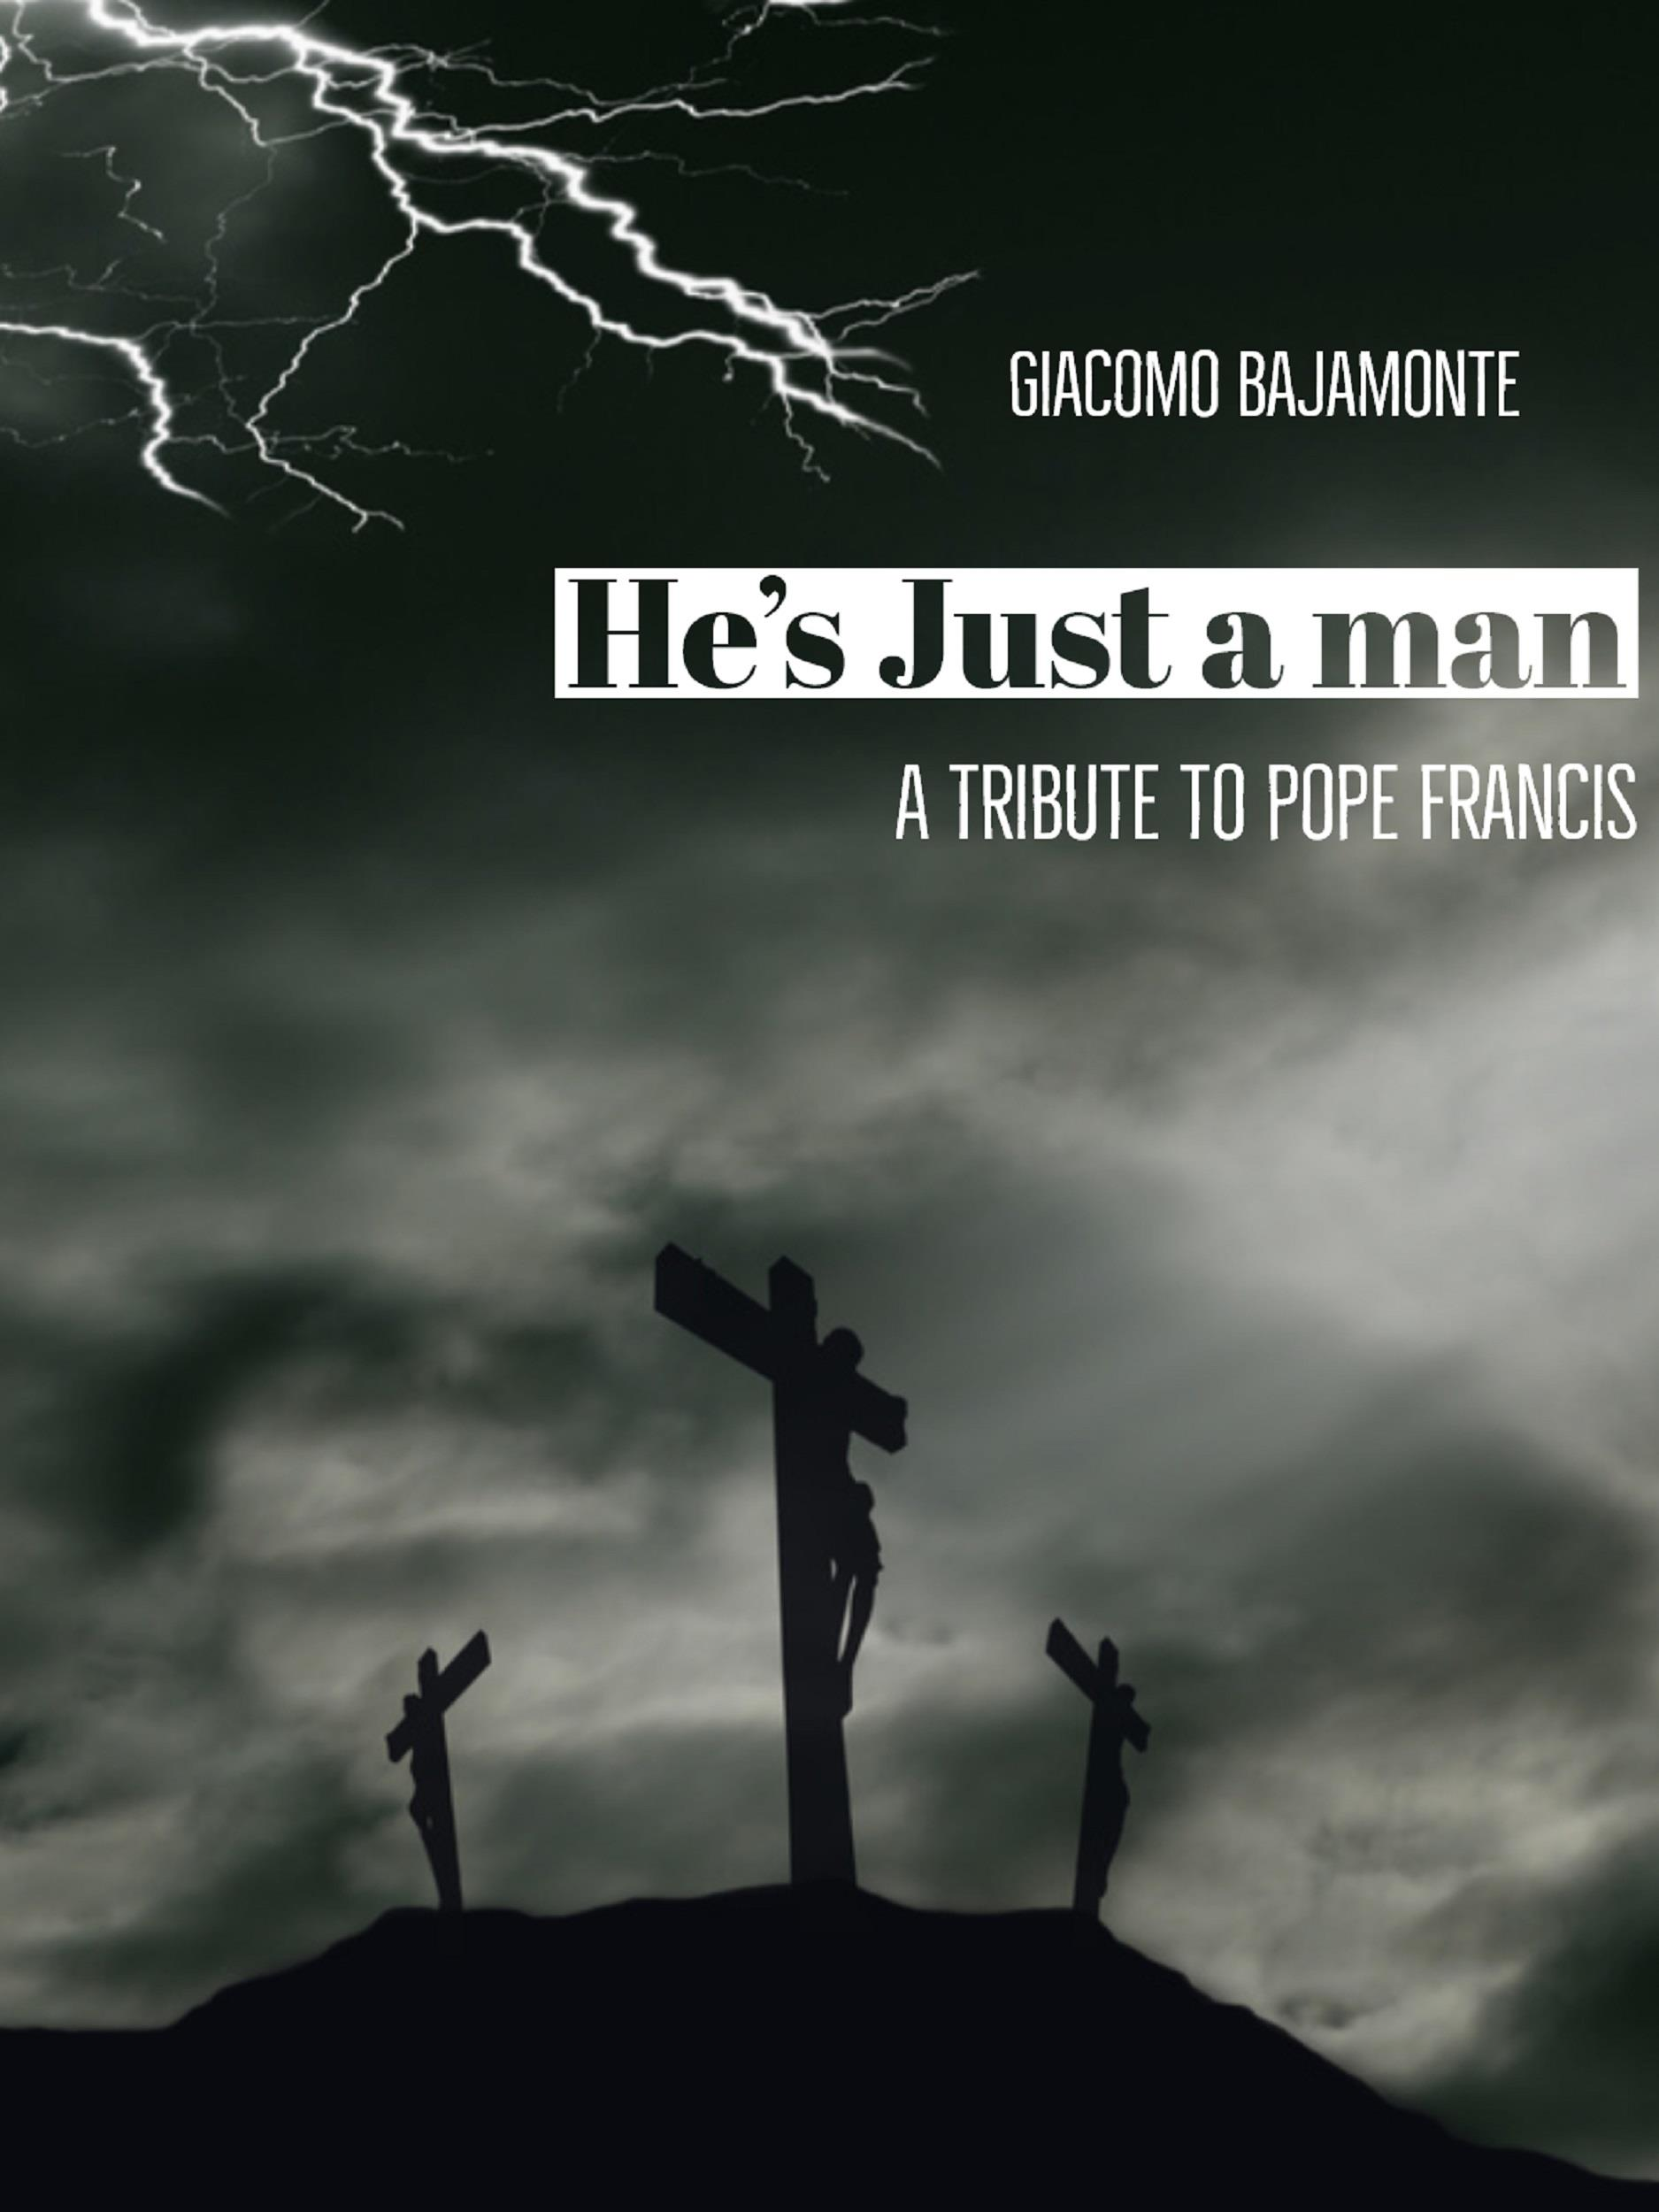 He's just a man: A tribute to pope Francis